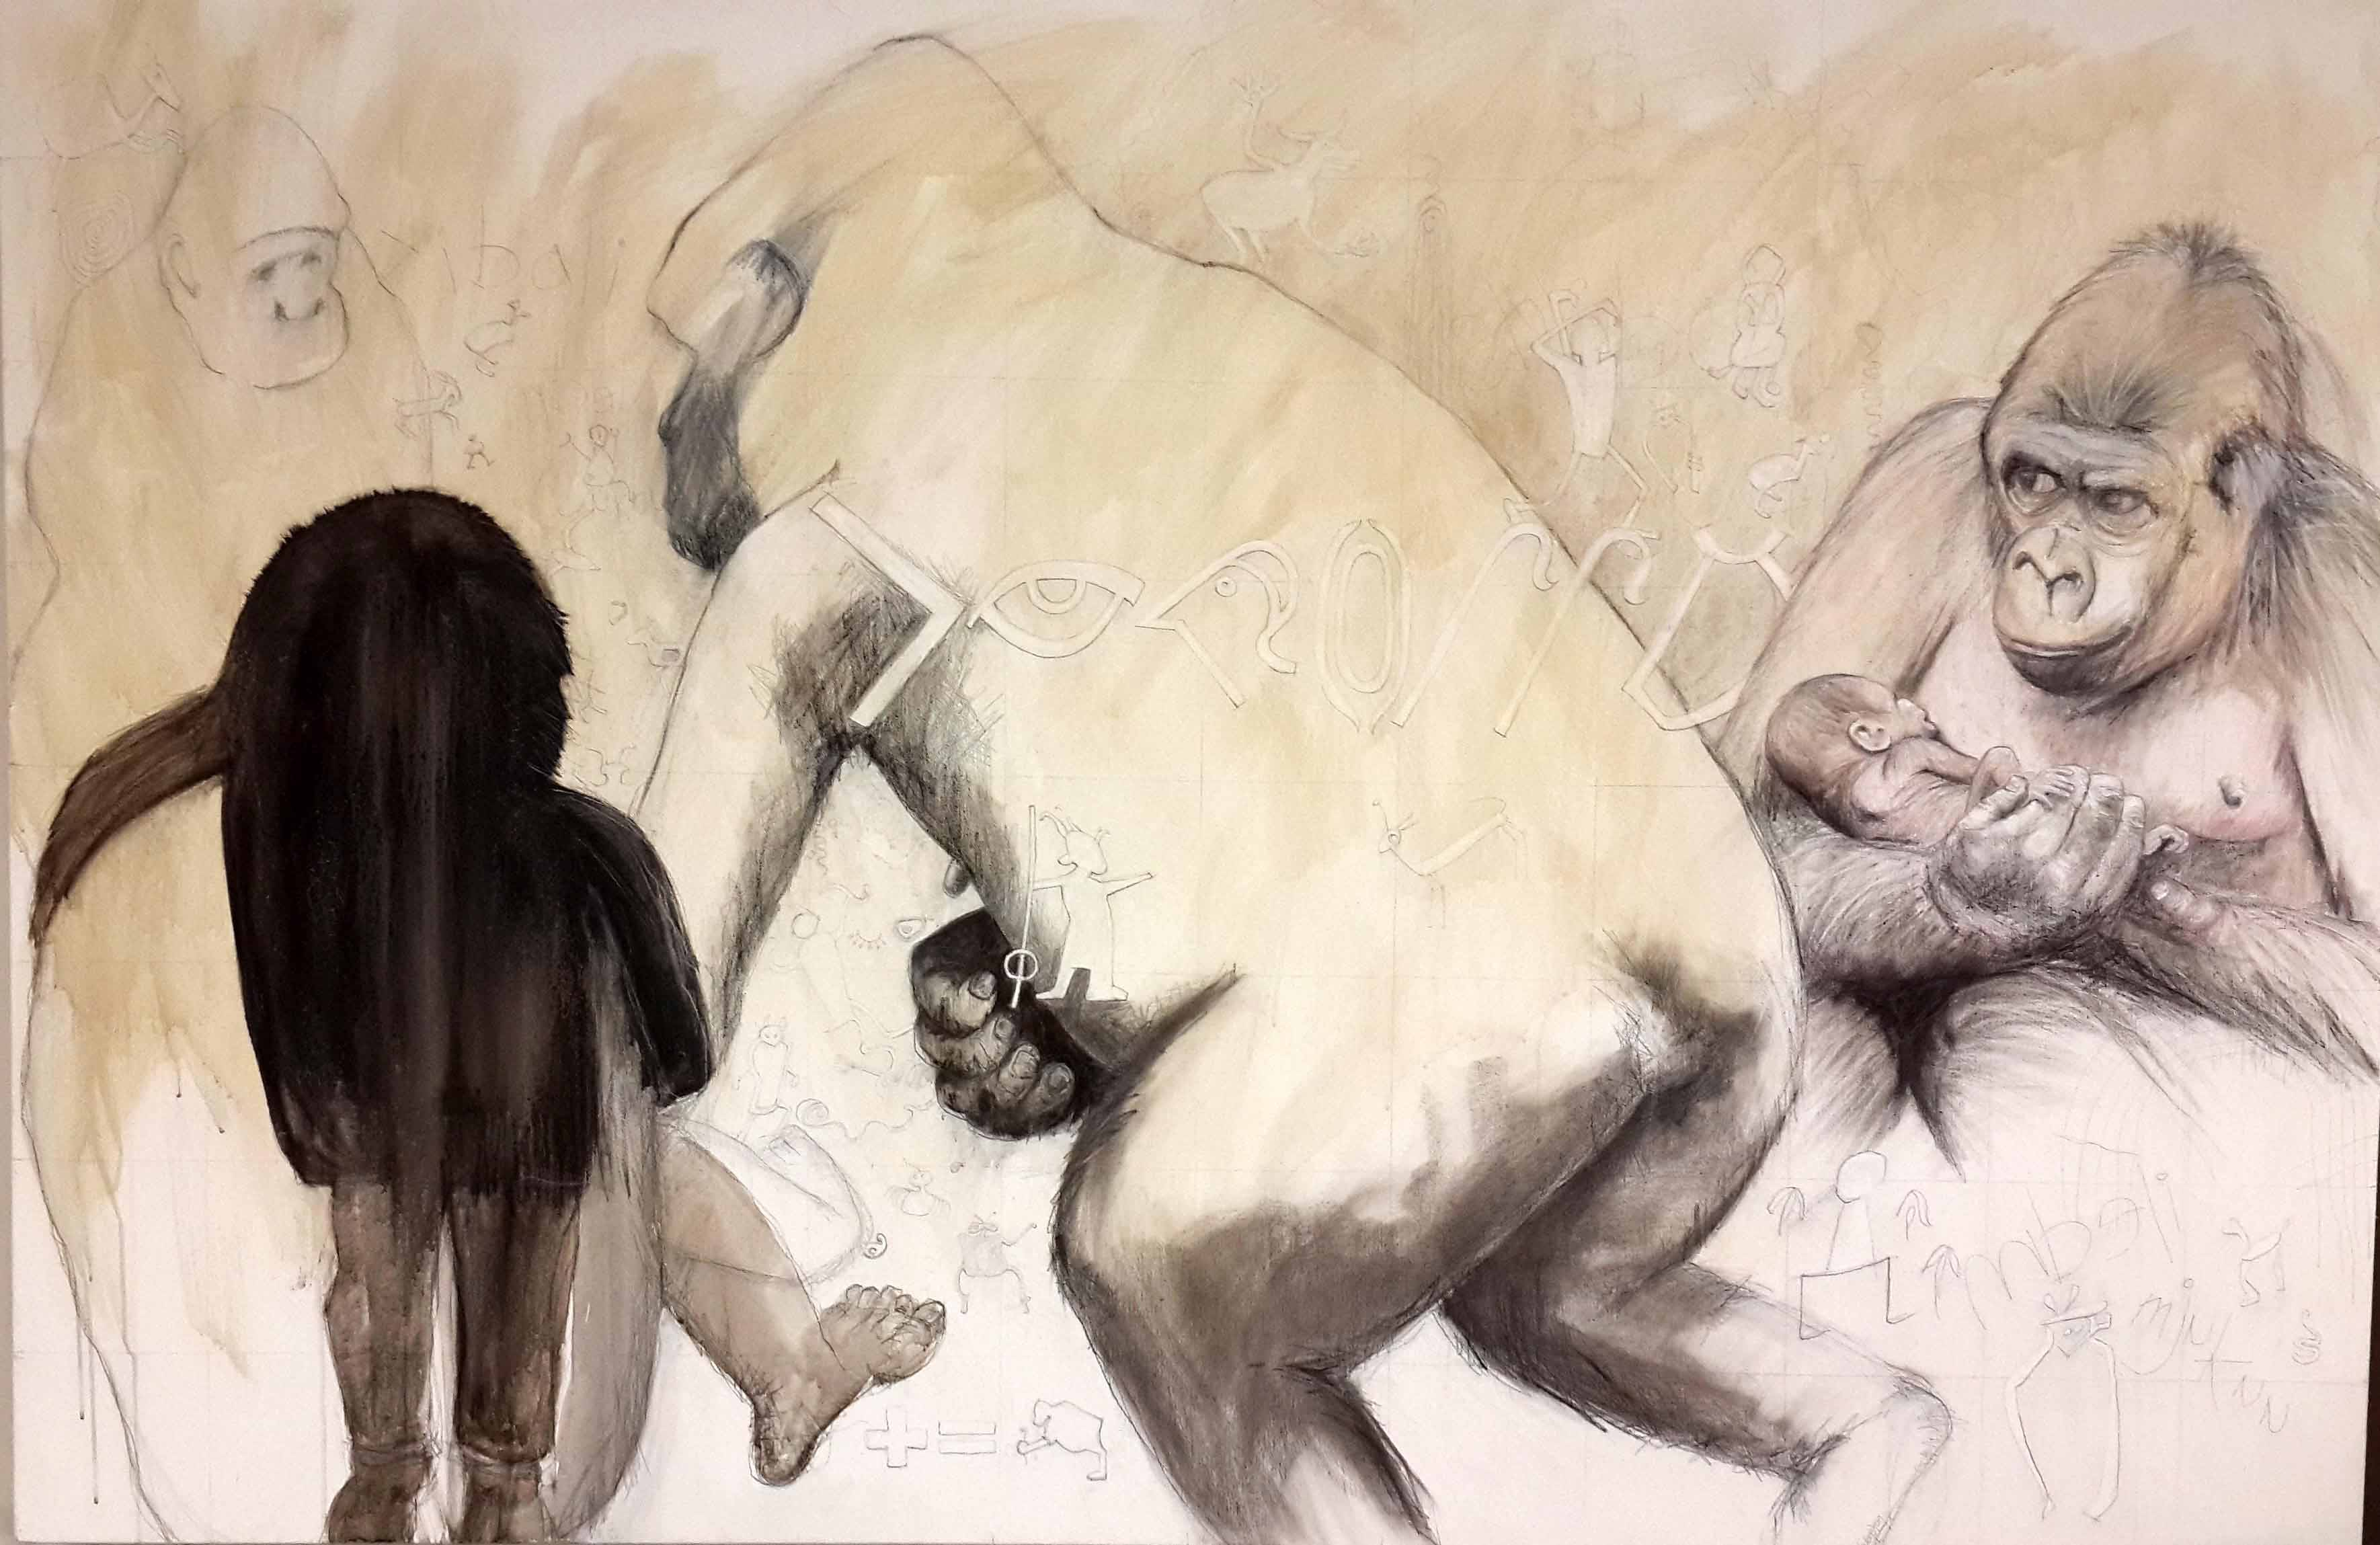 Mbeli & mjukuu pencil, charcoal, ink & shellac on canvas 122 x183cm